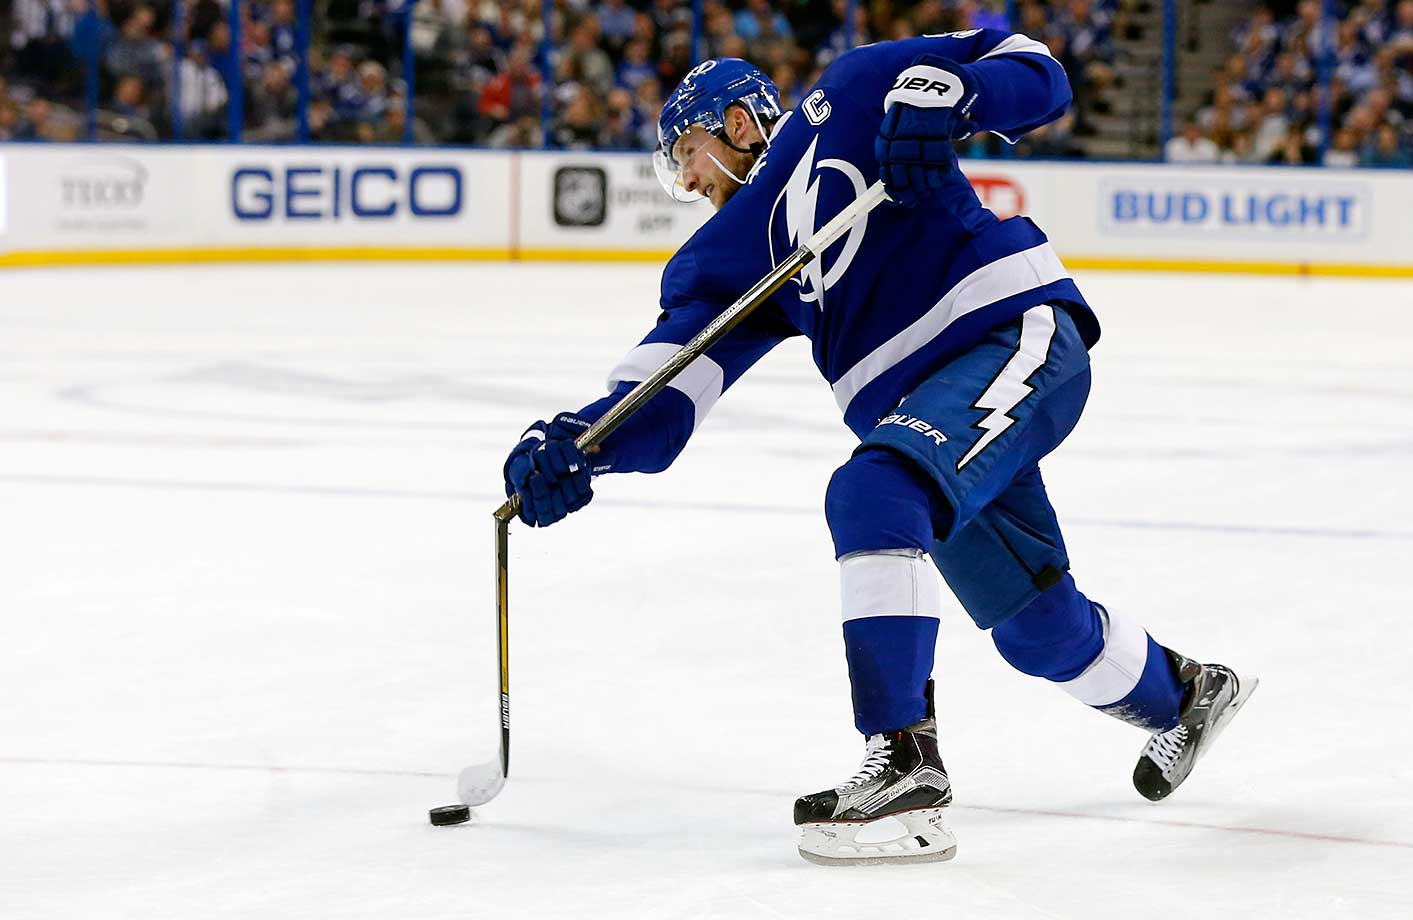 Tampa Bay's Steven Stamkos breaks his stick on a shot attempt against the Winnipeg Jets.